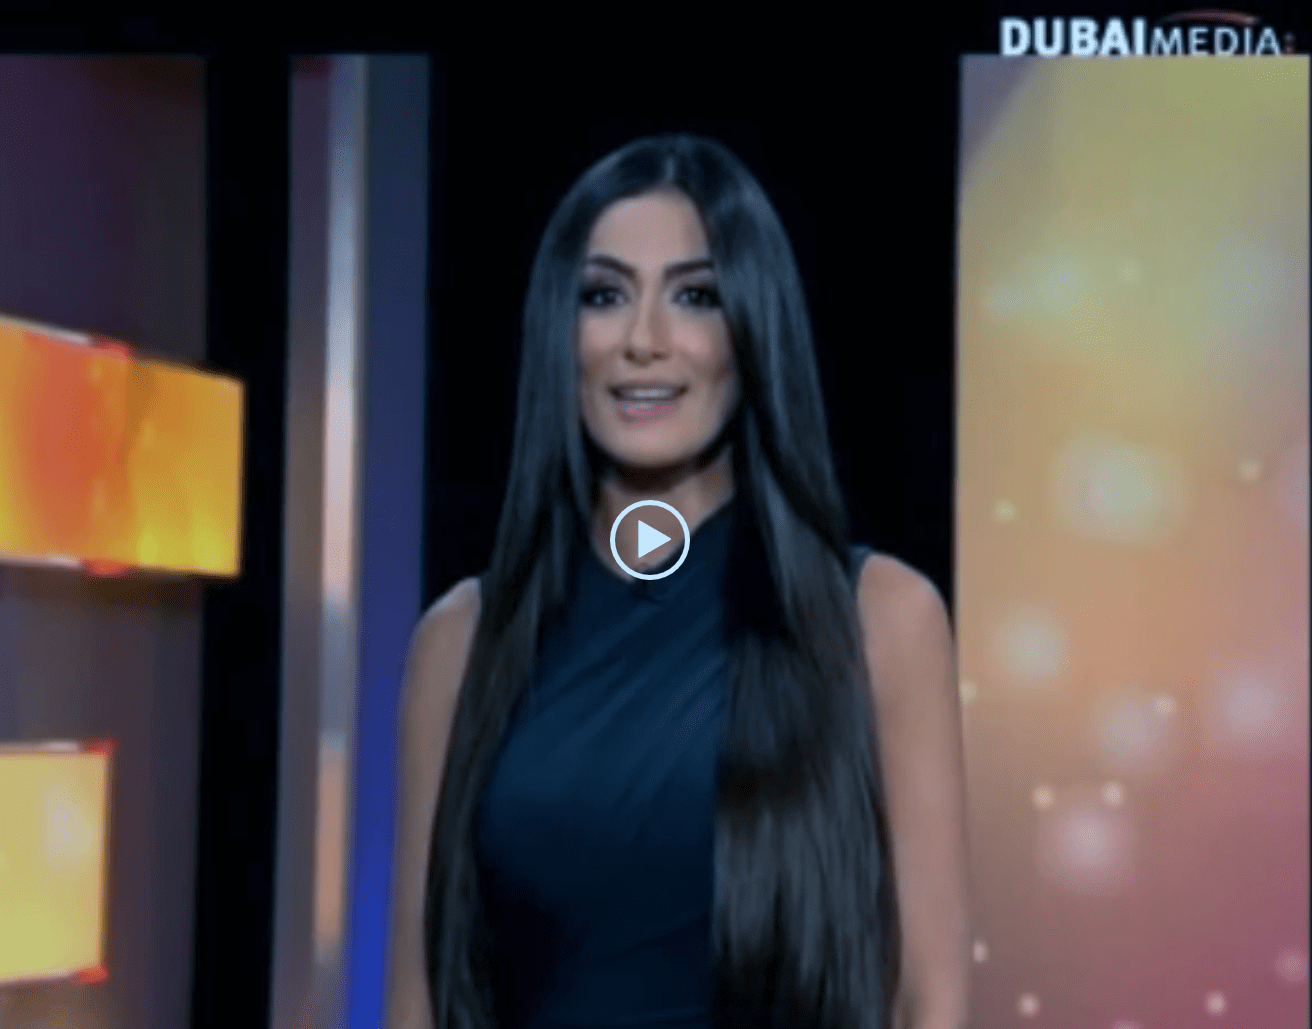 Mr. Andrea Artioli Dubai TV